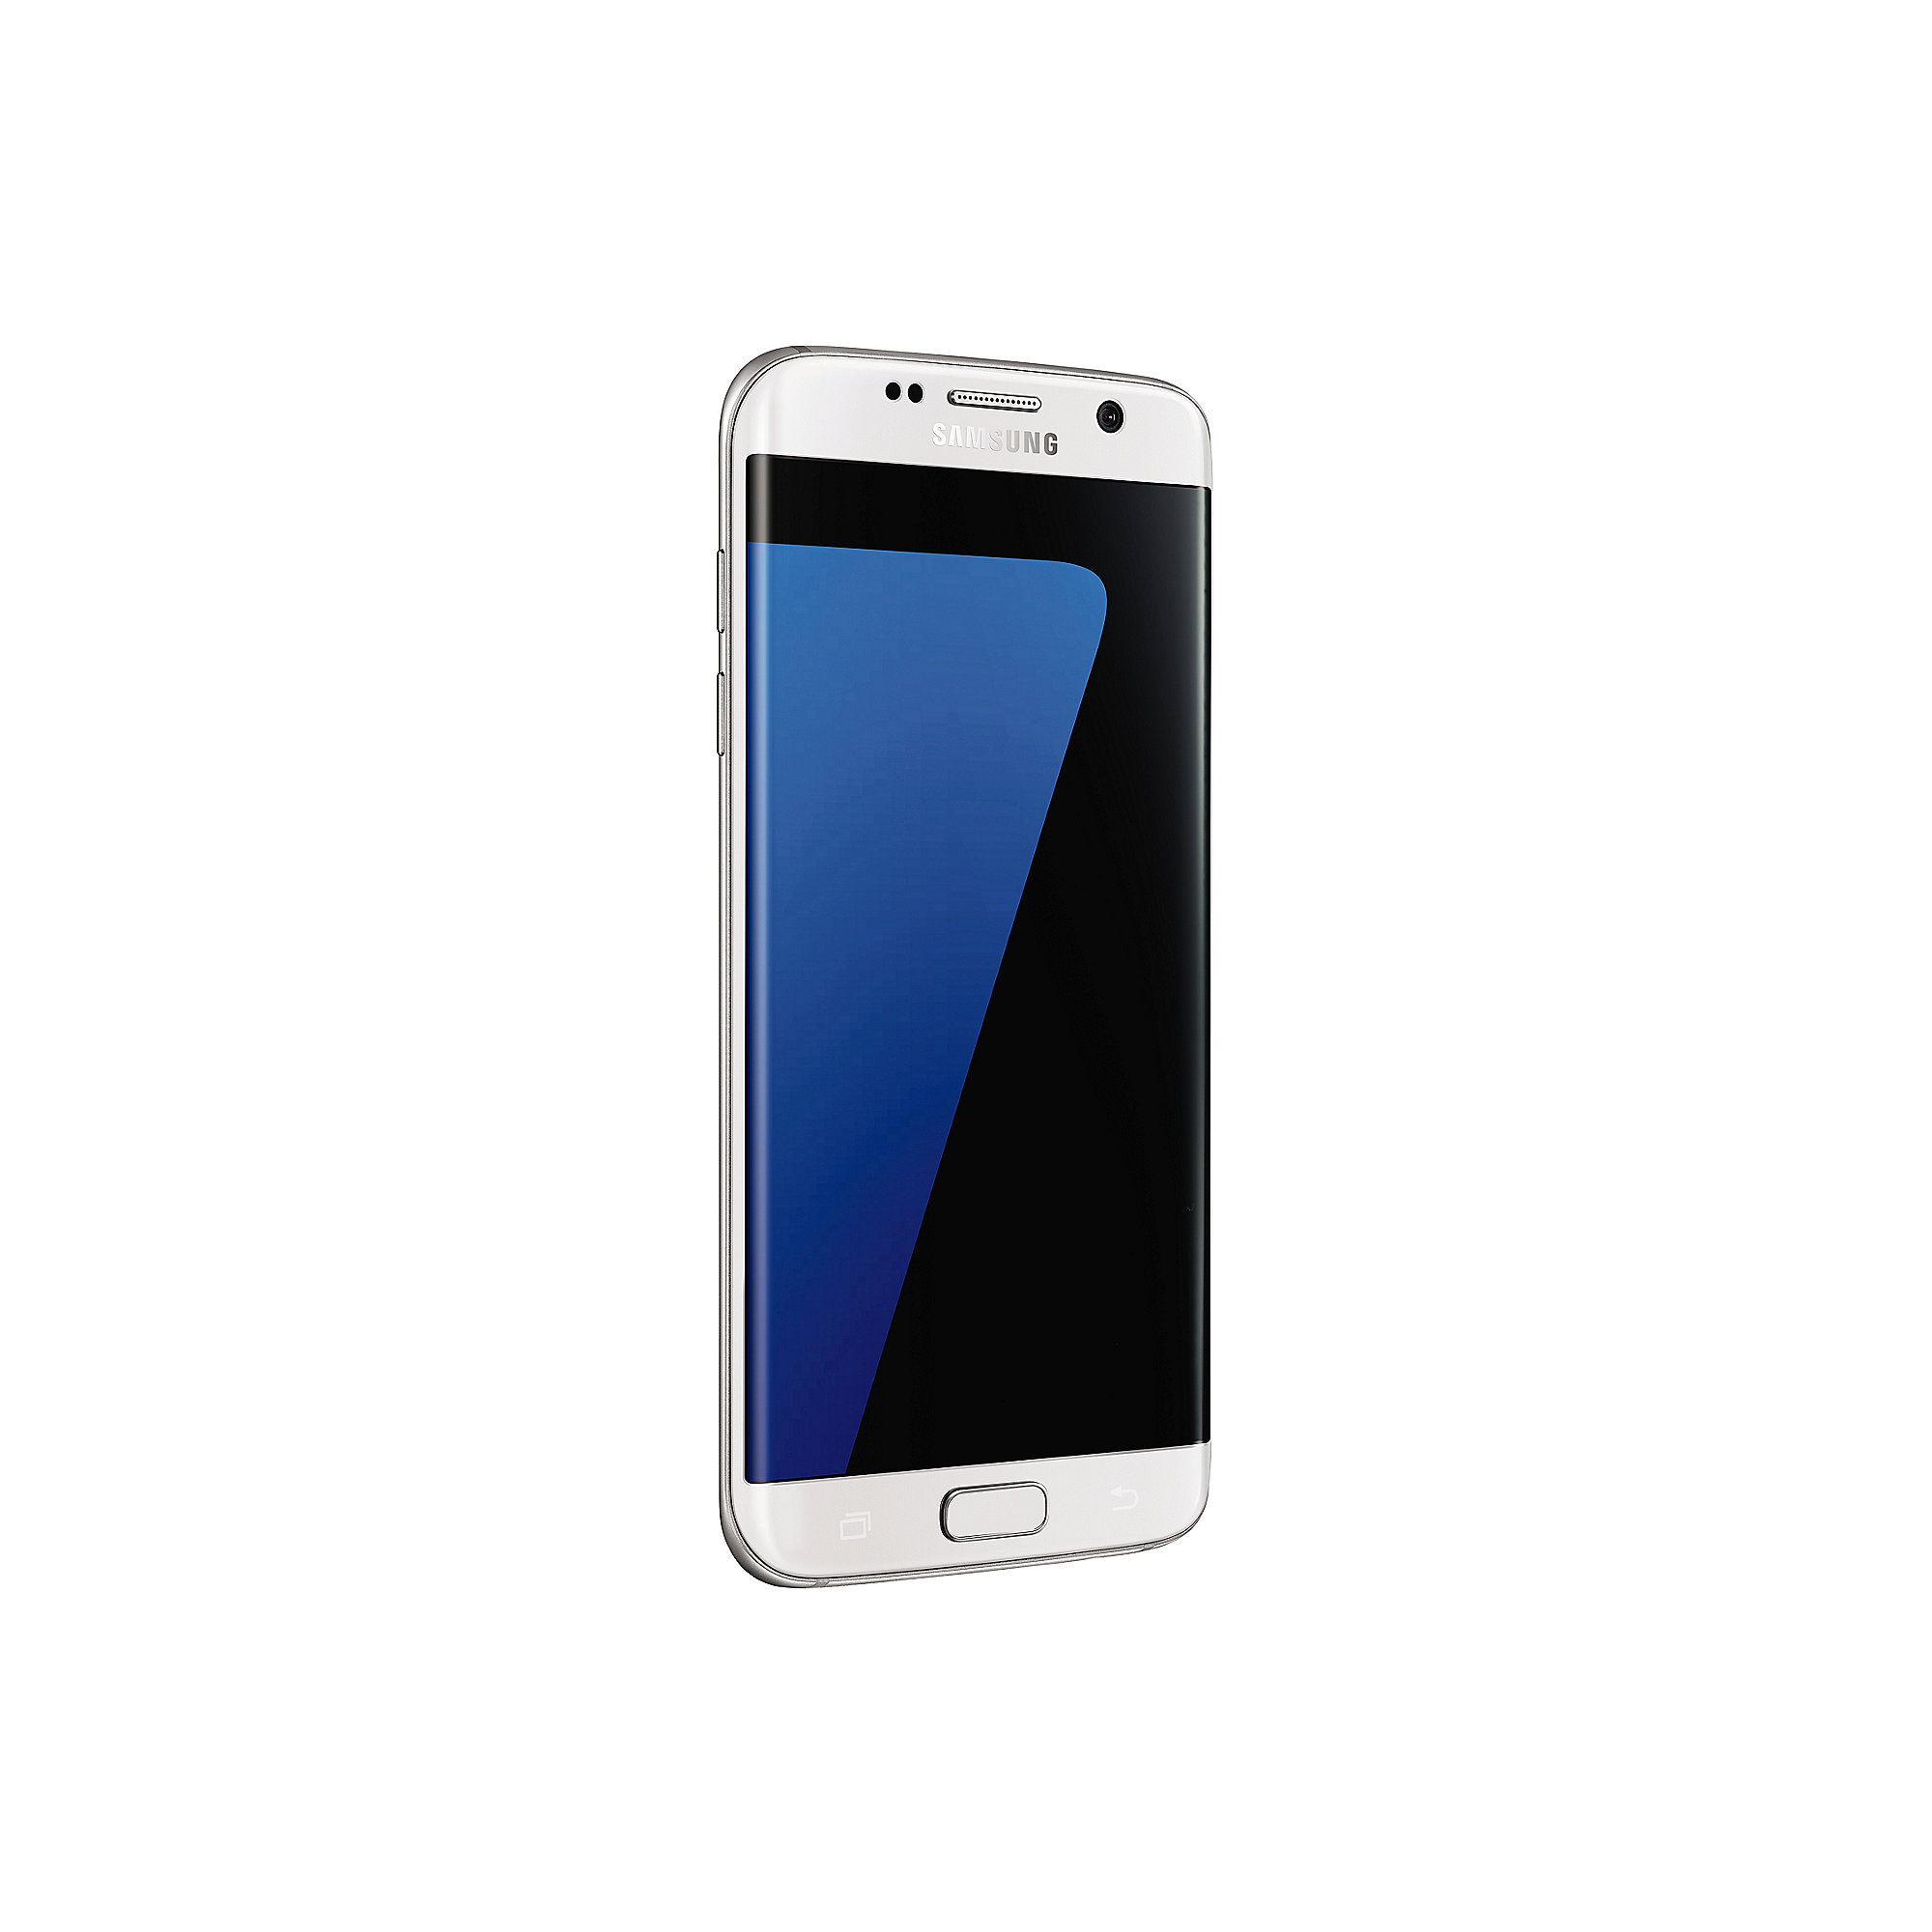 Samsung GALAXY S7 edge white-pearl G935F 32 GB Android Smartphone